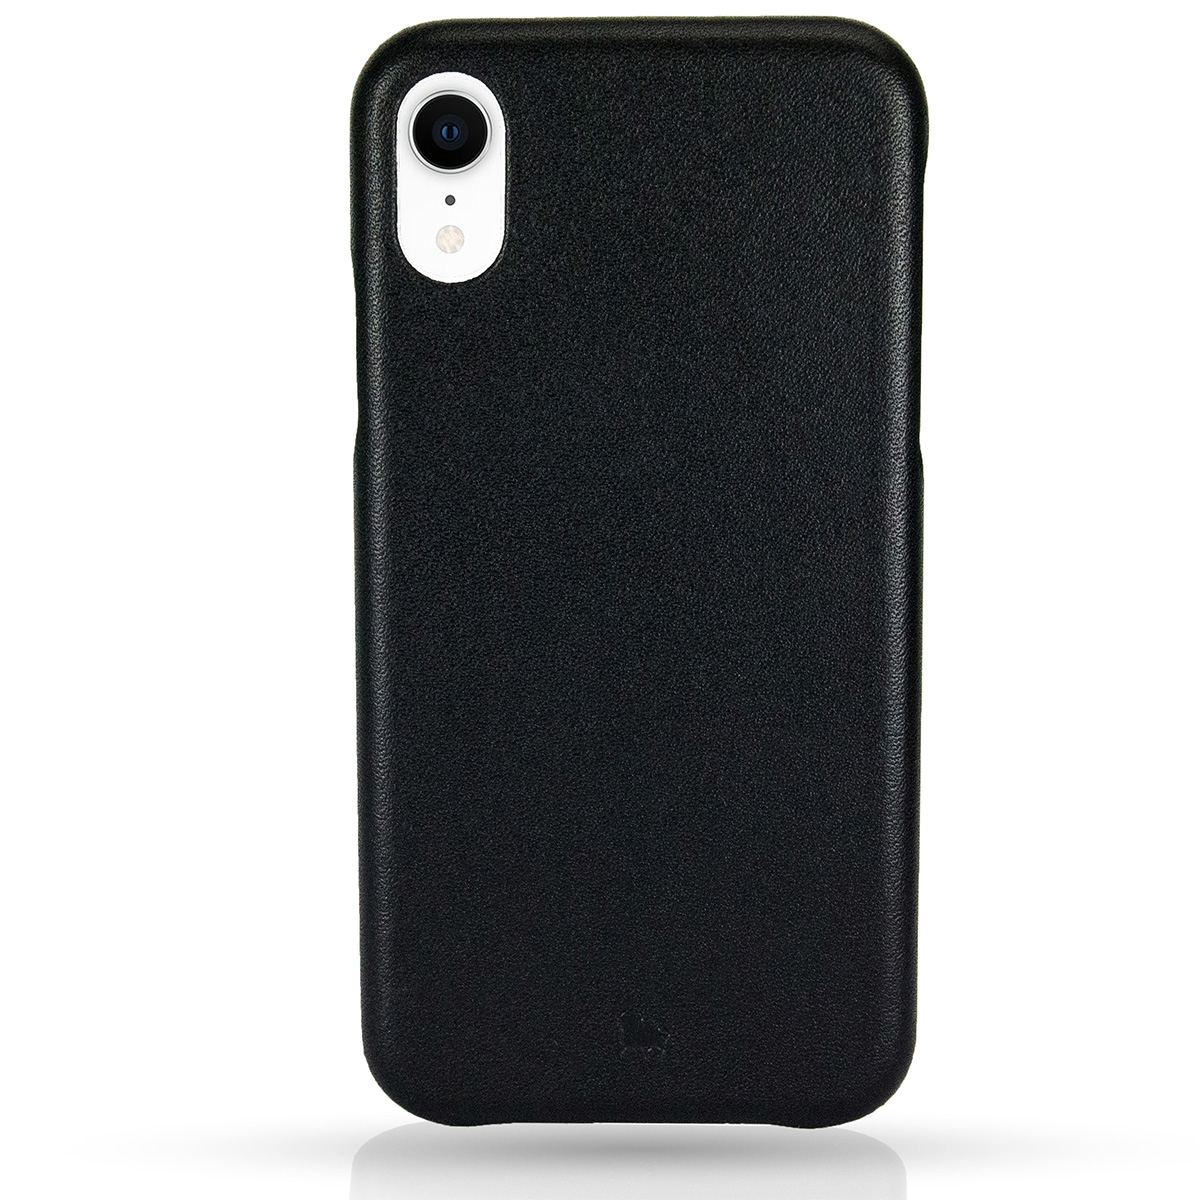 new style a167d f095a iPhone XR Case Leather - Minimalistic Design